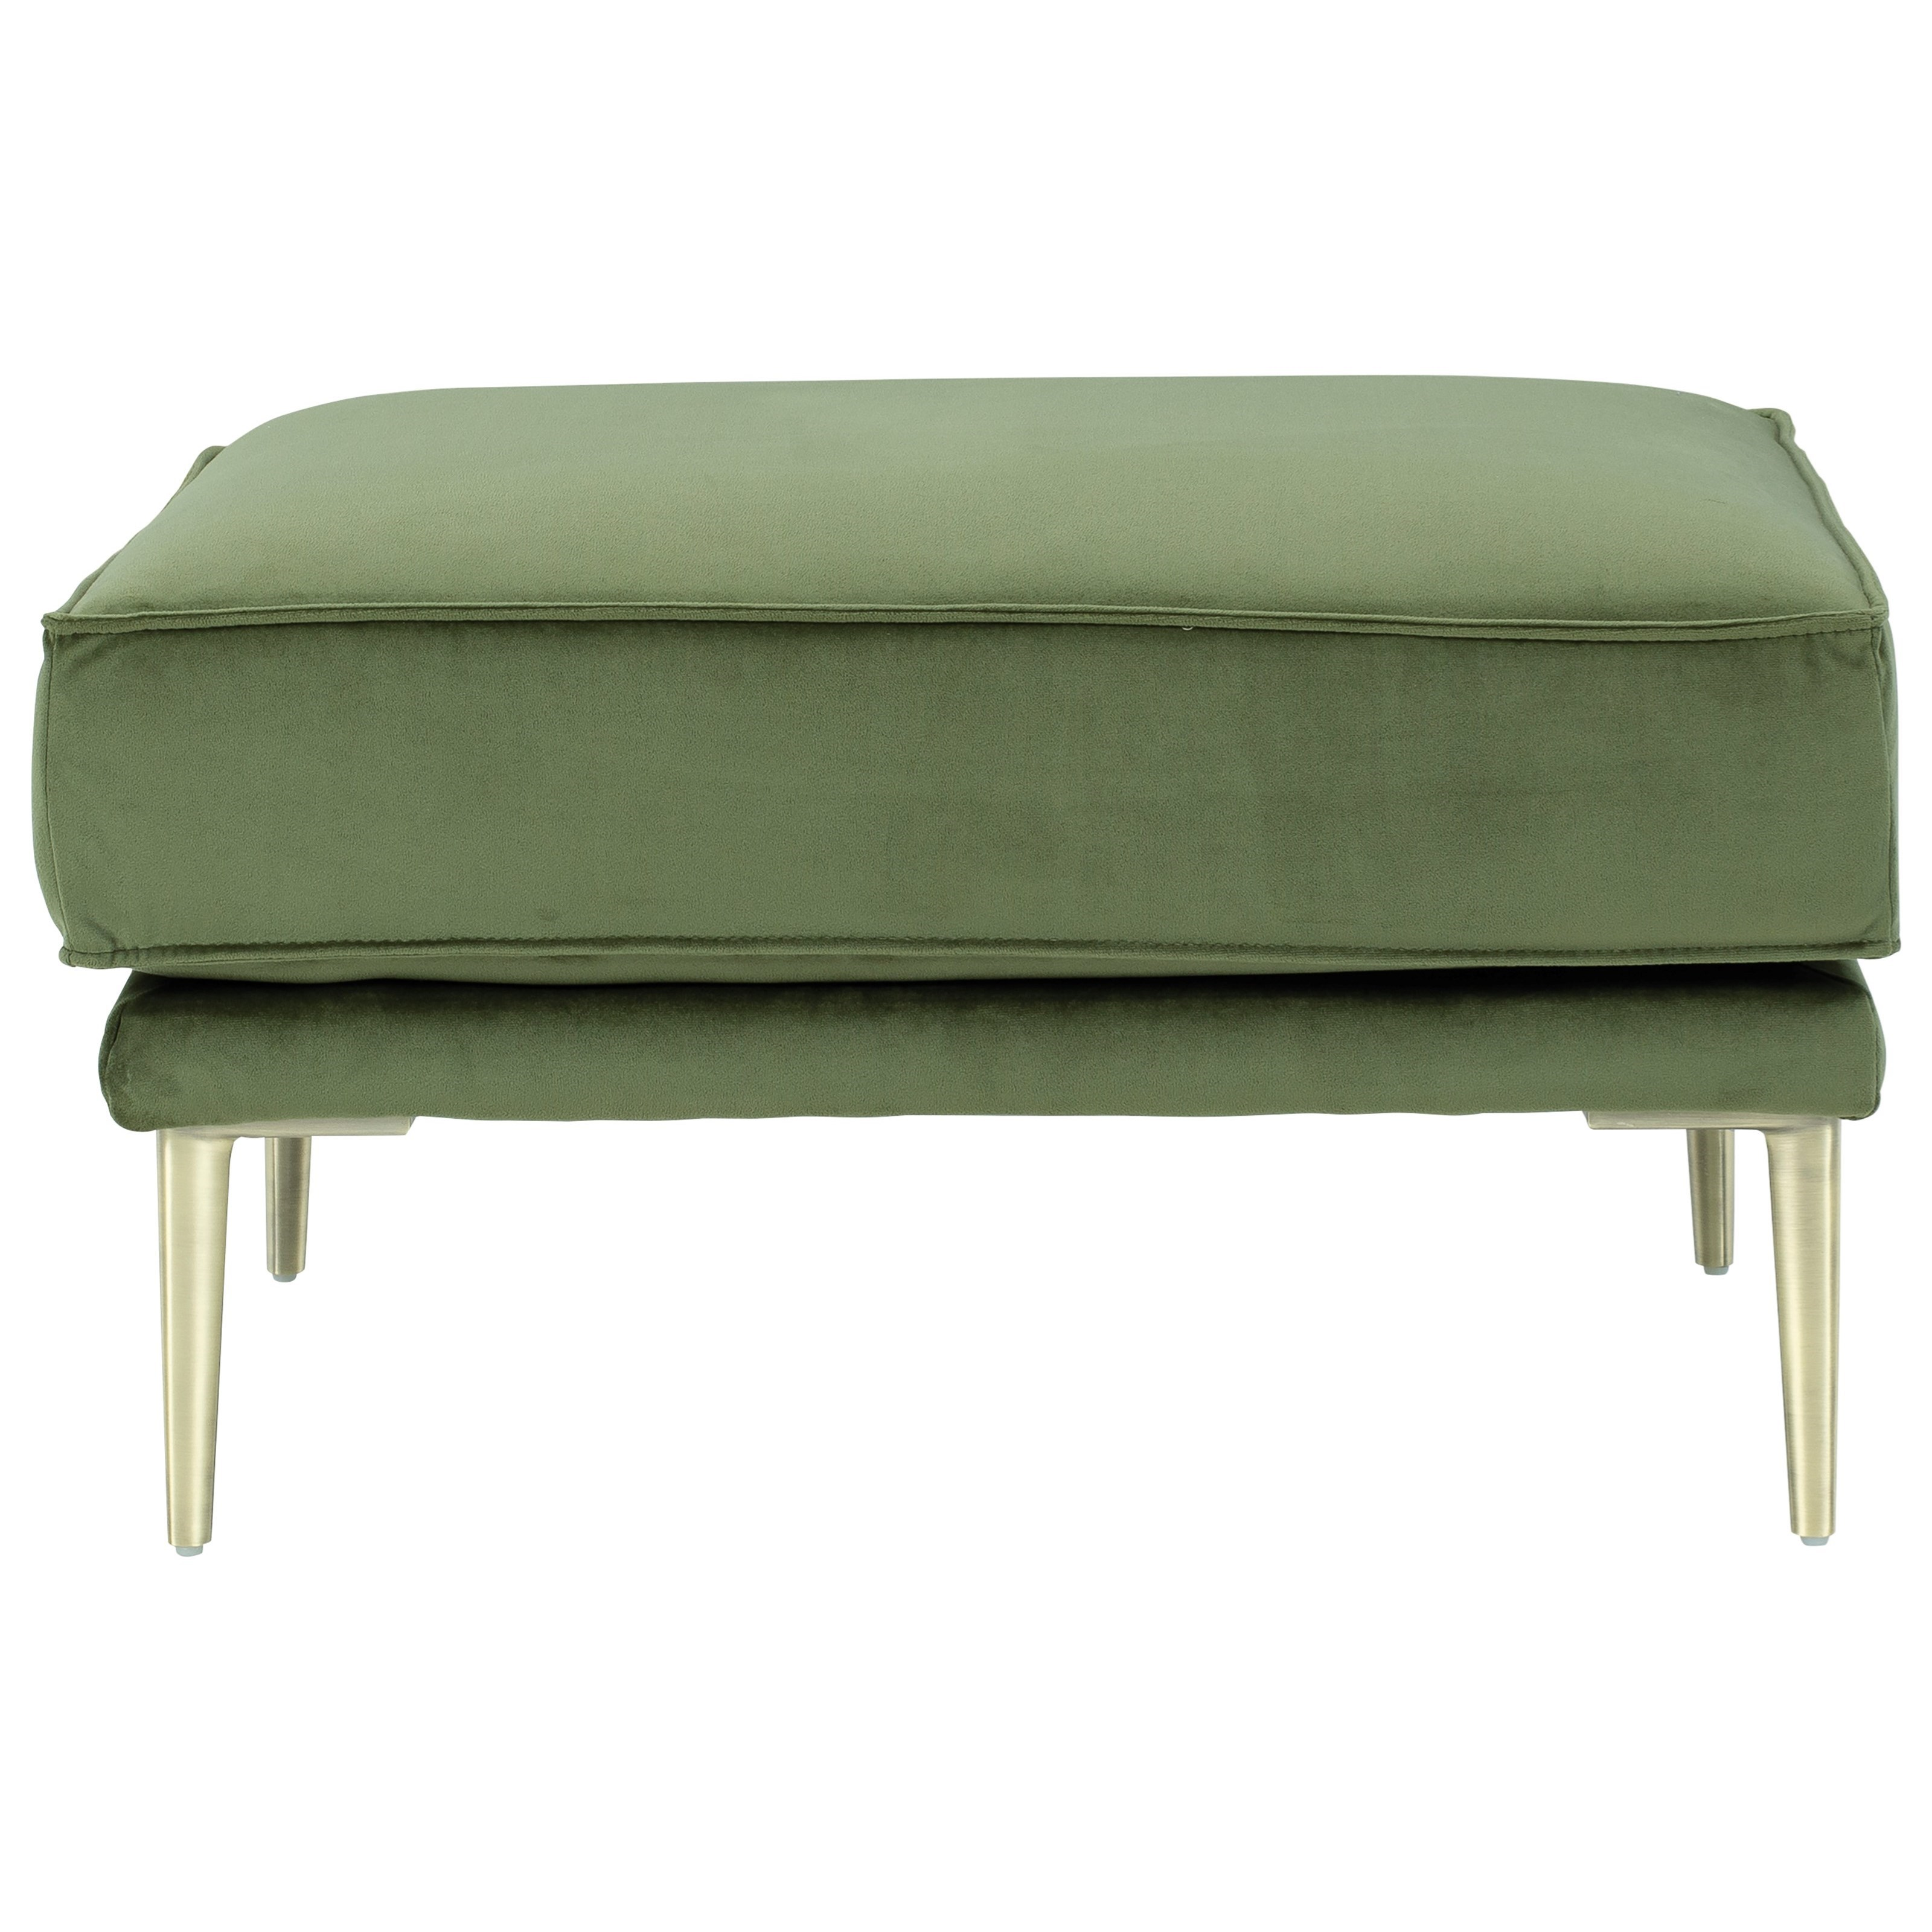 Macleary Ottoman by Ashley (Signature Design) at Johnny Janosik